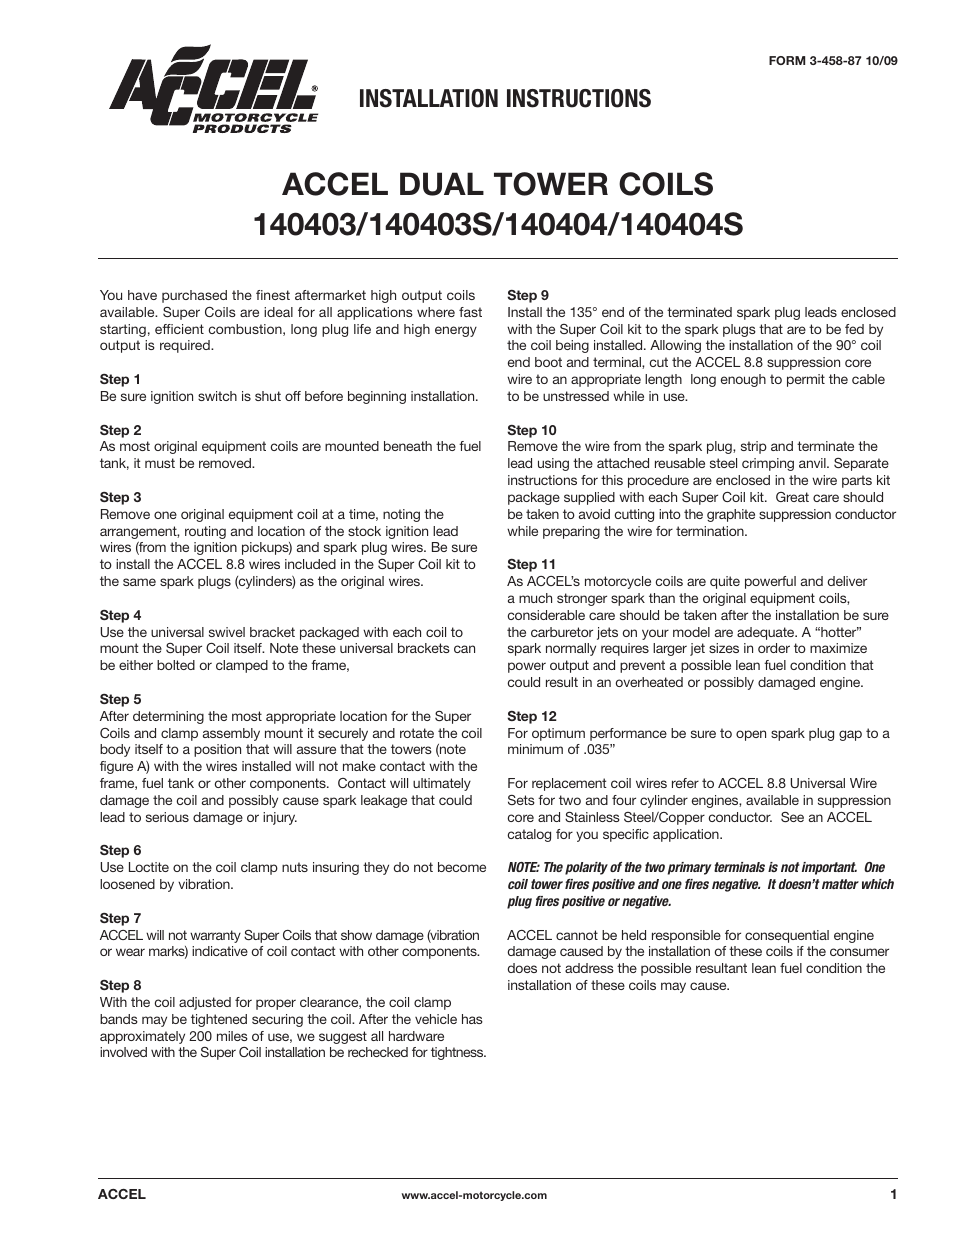 Accel Coil Wiring Diagram Free Engine Image For Diagrams Mallory Ignition Harley Davidson